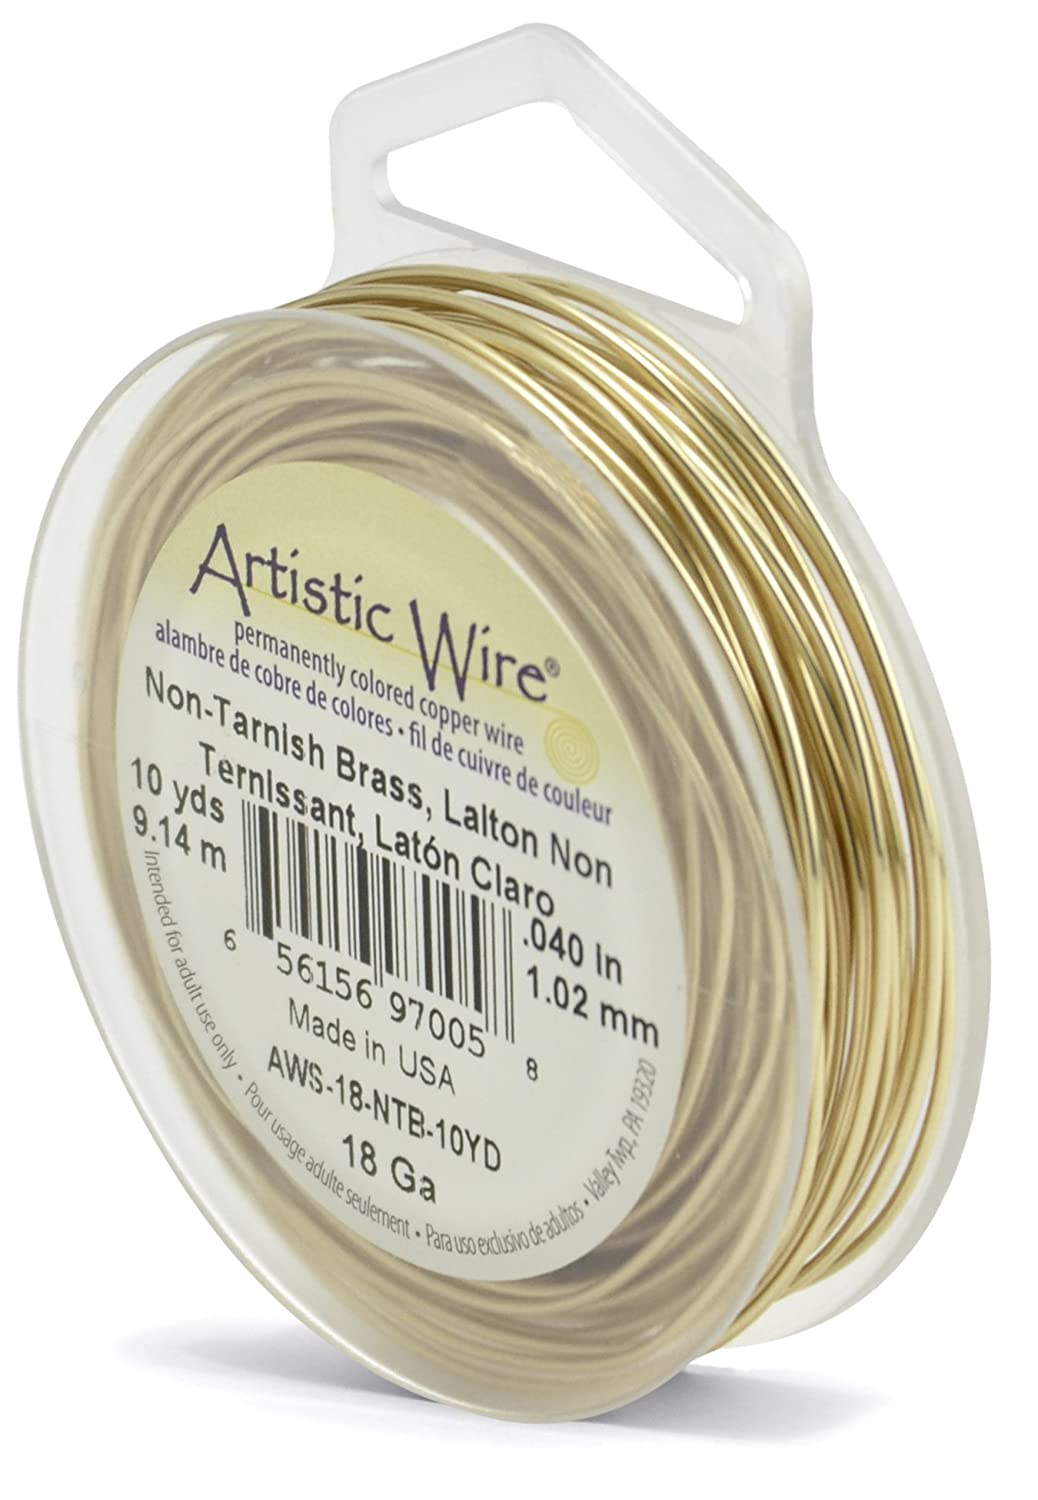 Artistic Wire 18-Gauge Non-Tarnish Brass Wire, 10-Yards AWS-18-NTB-10YD